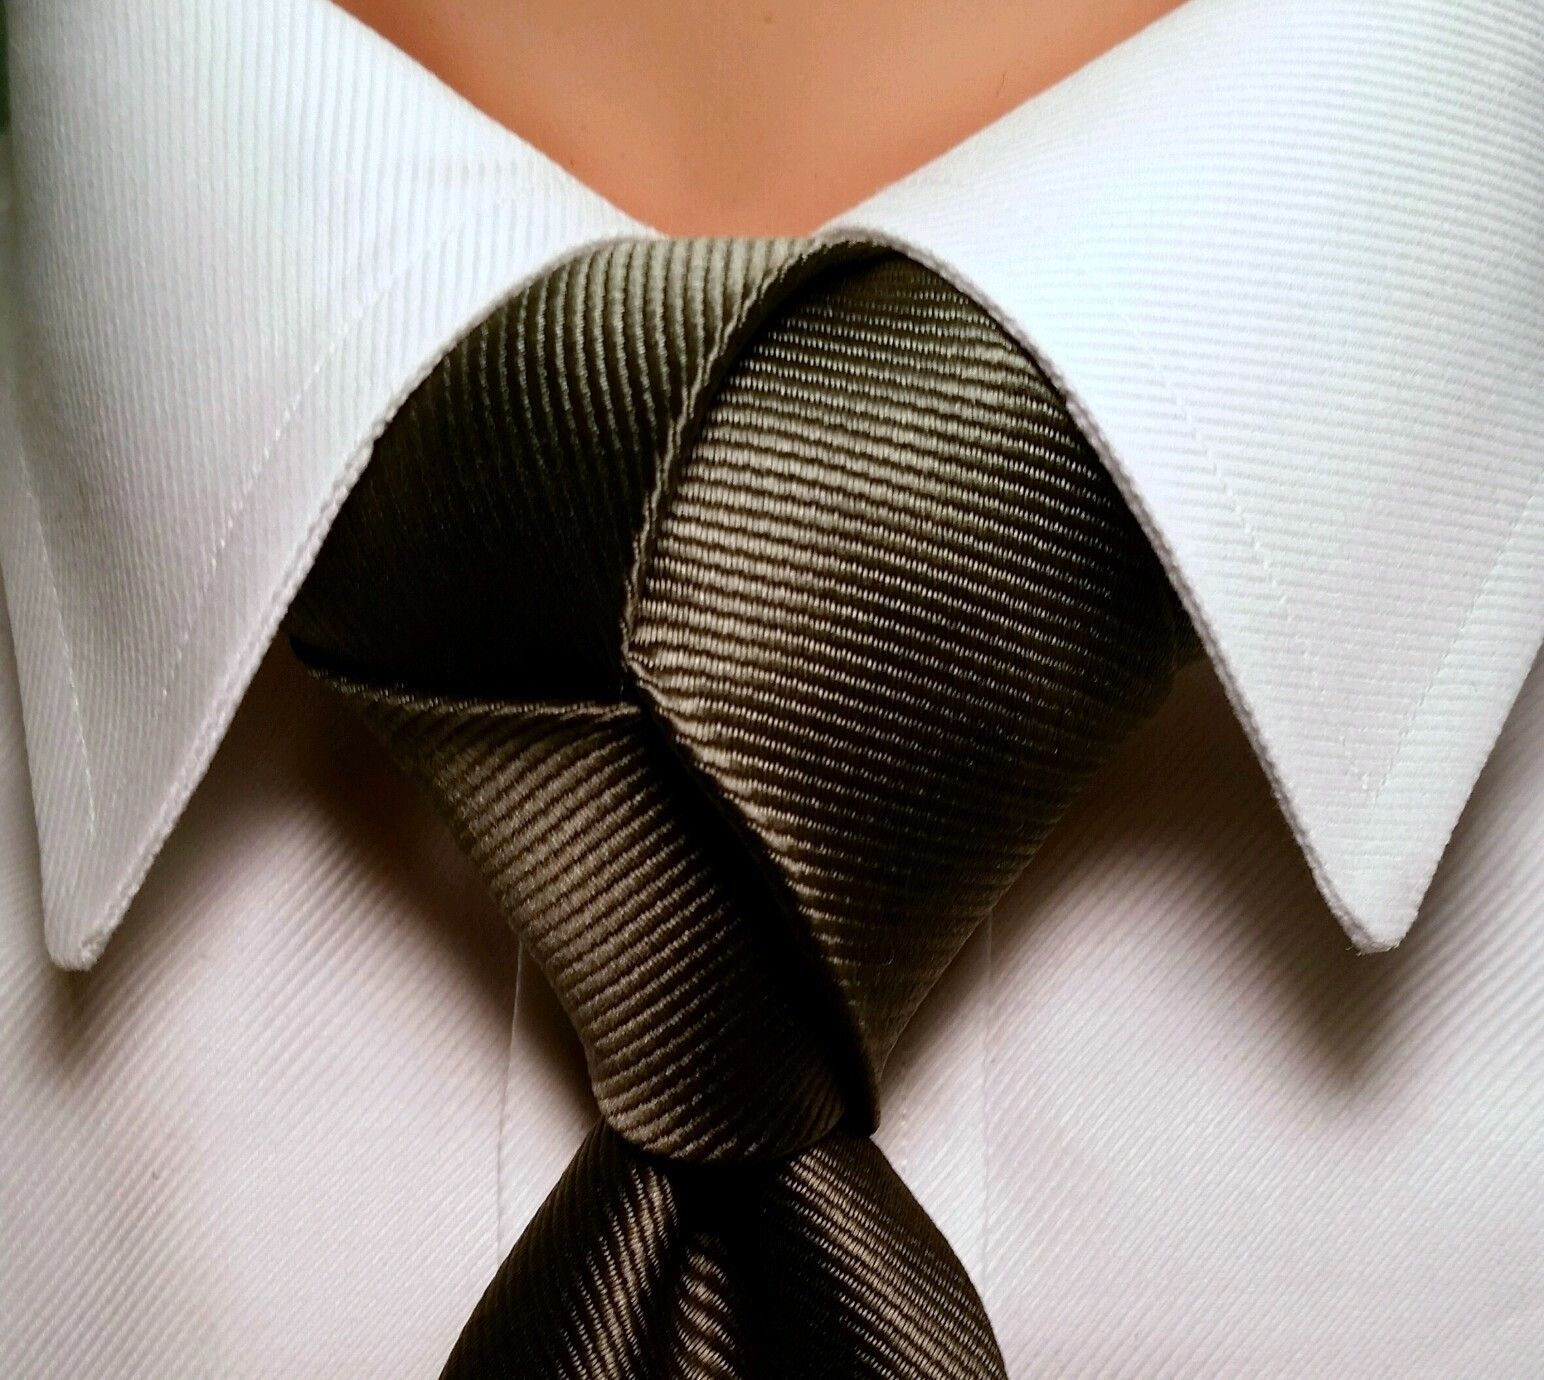 Red Trinity In 2018 My Style Pinterest Tie Knots And Mens Knot Diagram Pre Tied Knotted Necktie A